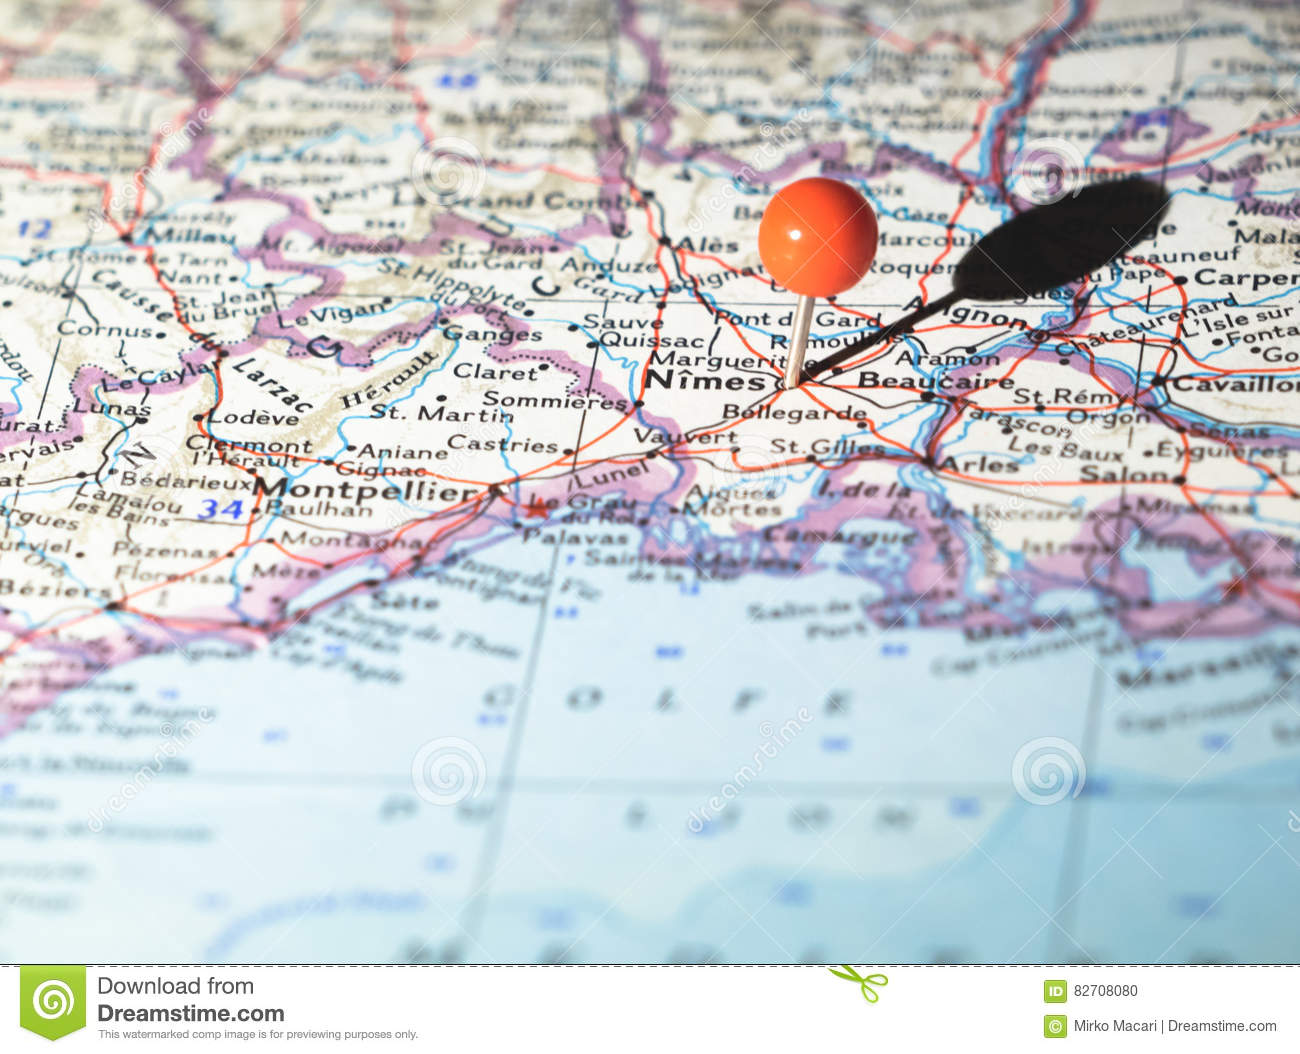 Nimes France Location Pinned On The Route Map Stock Photo Image Of